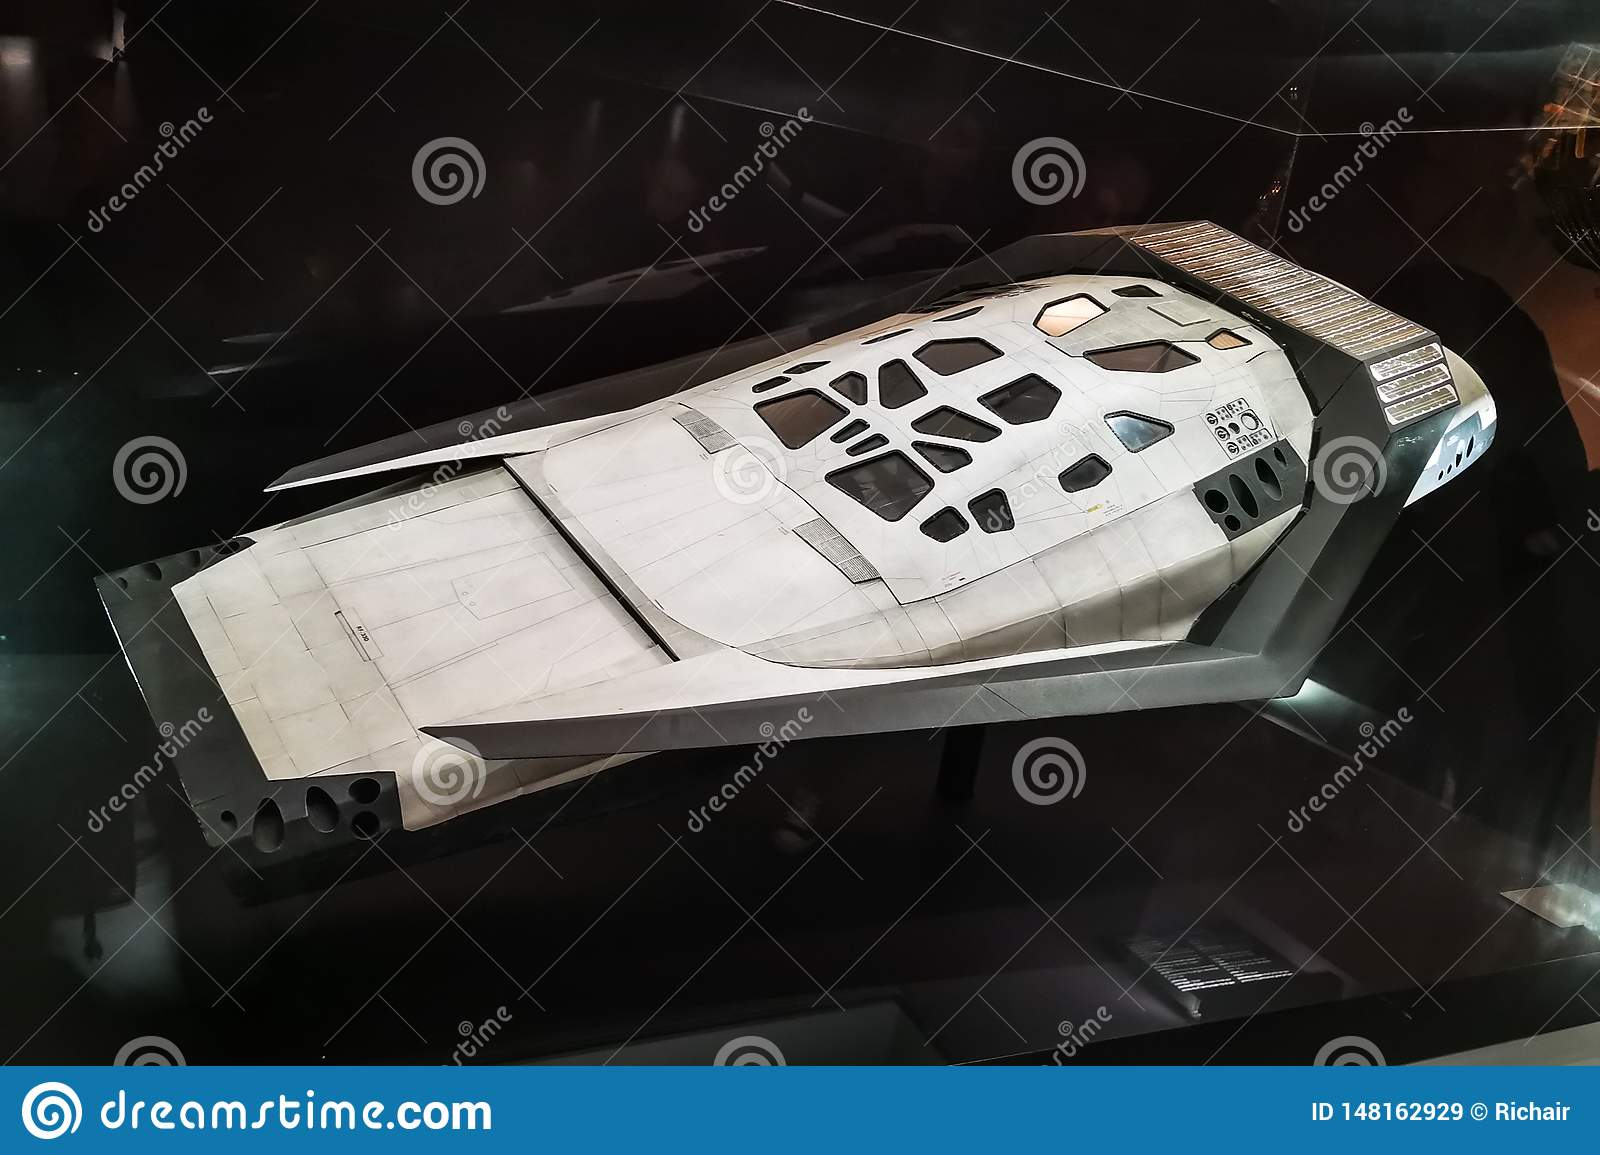 Space Ship From Interstellar Editorial Stock Image Image Of Movie 2014 148162929